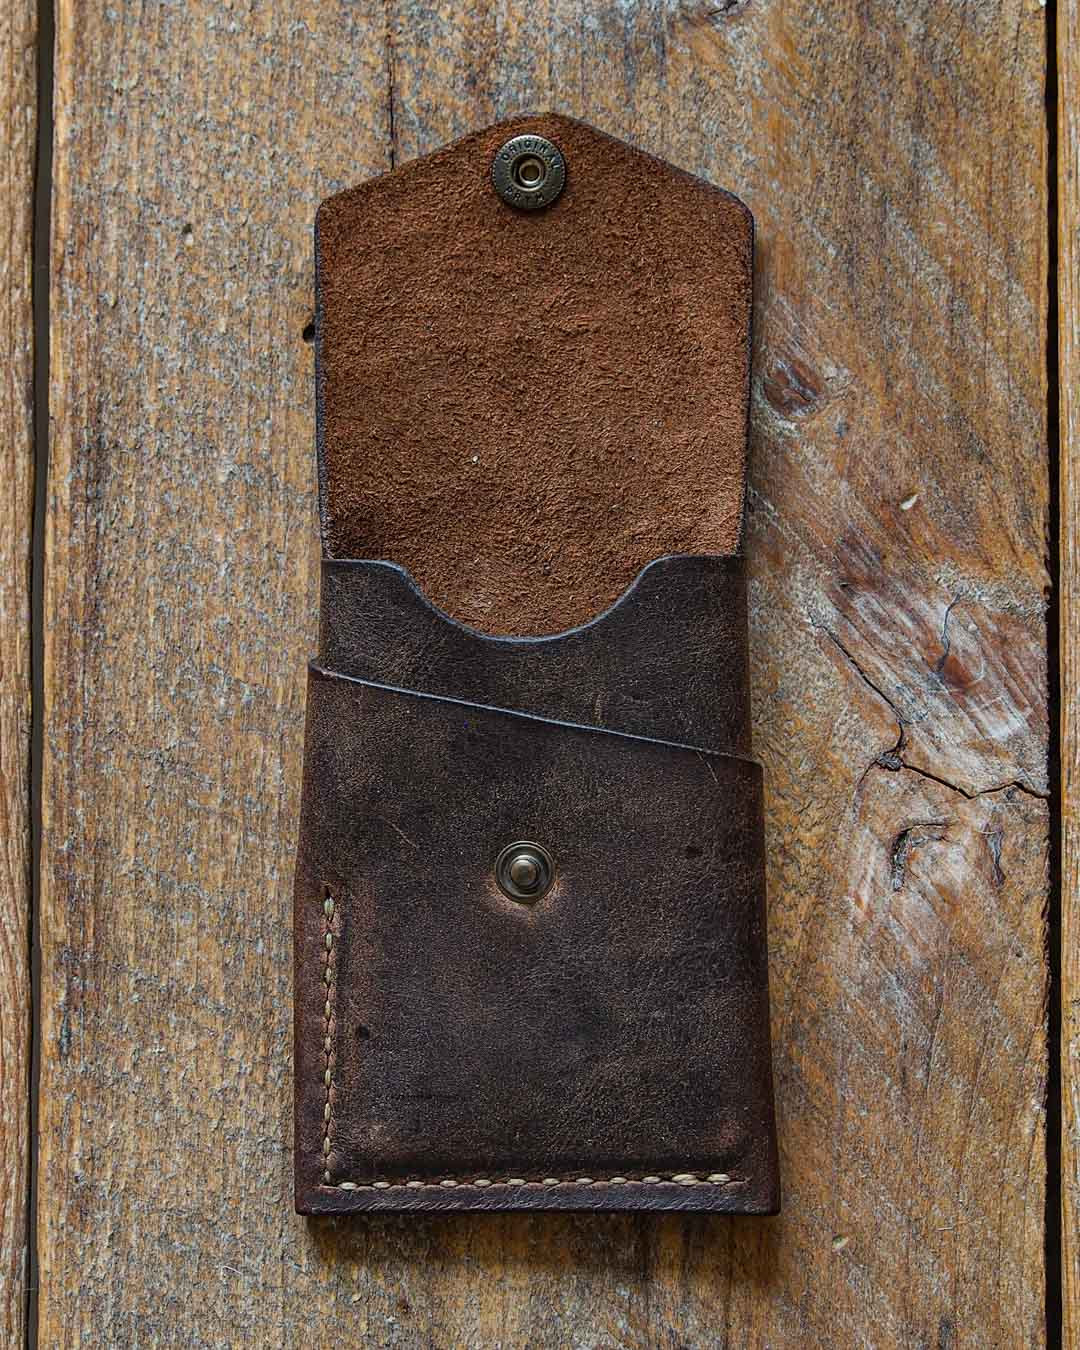 Luava handcrafted leather overfold wallet rustic cardholder card holder handmade in finland front open